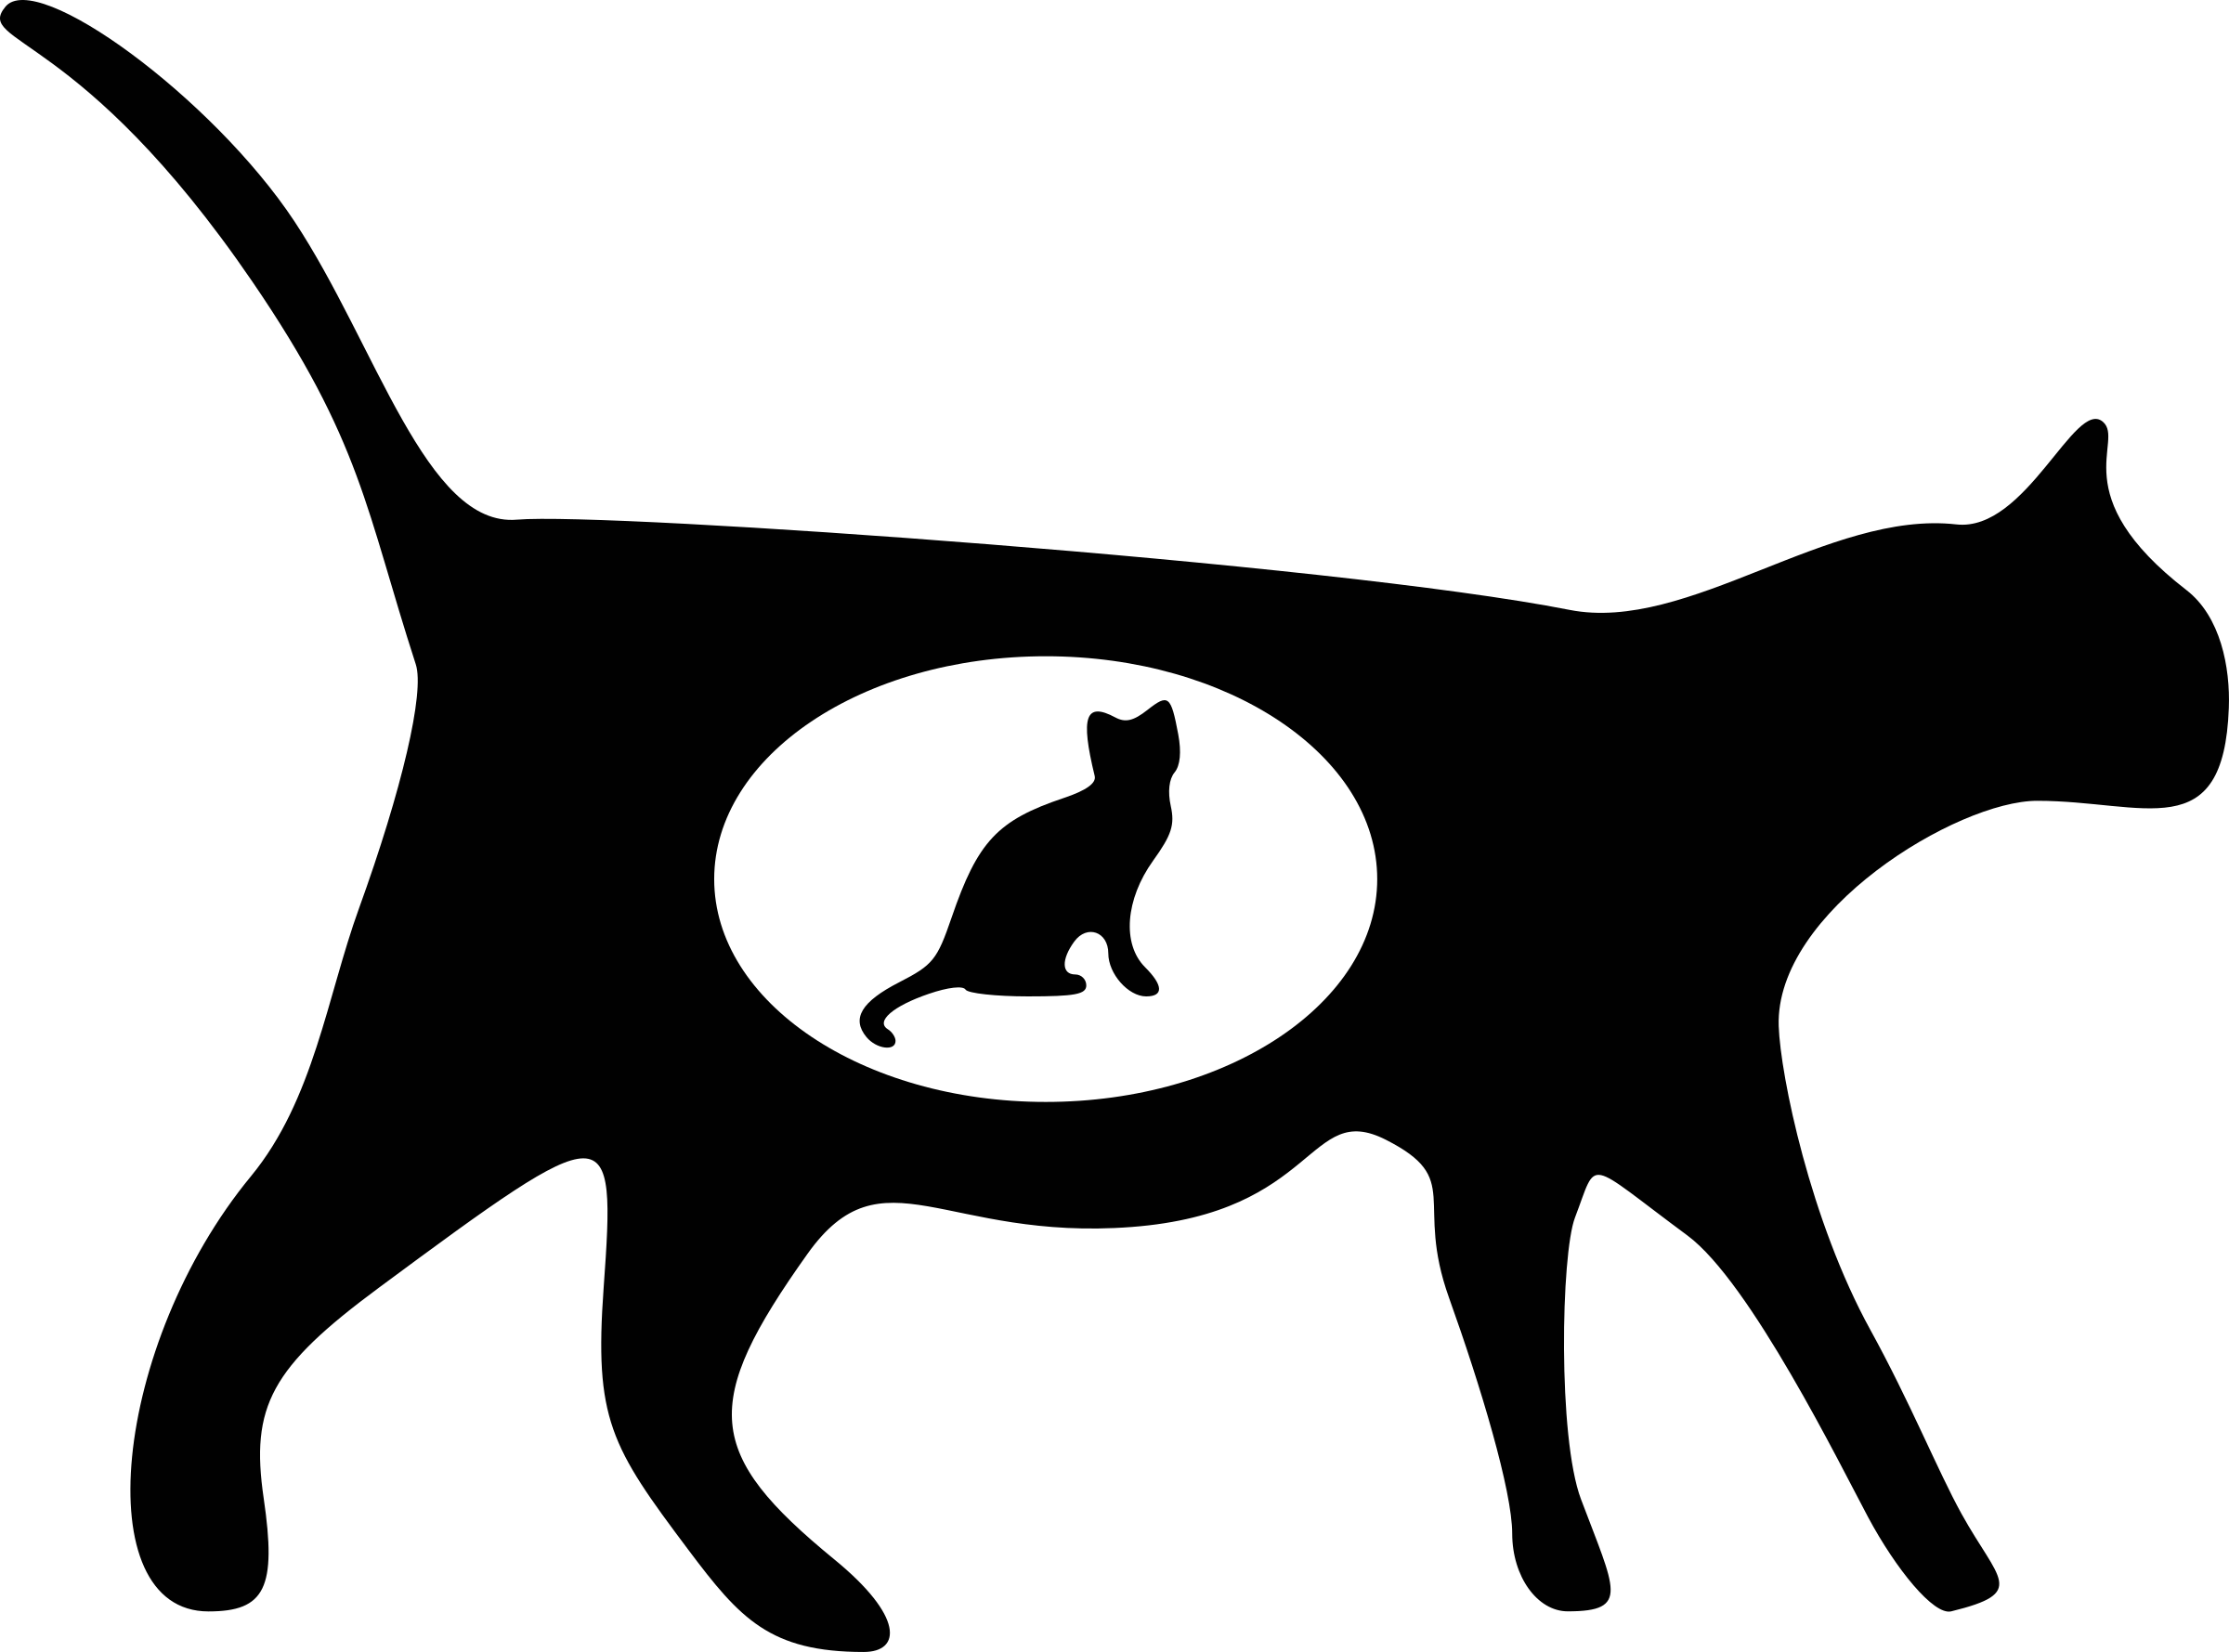 Icons big image png. Clipart cat icon